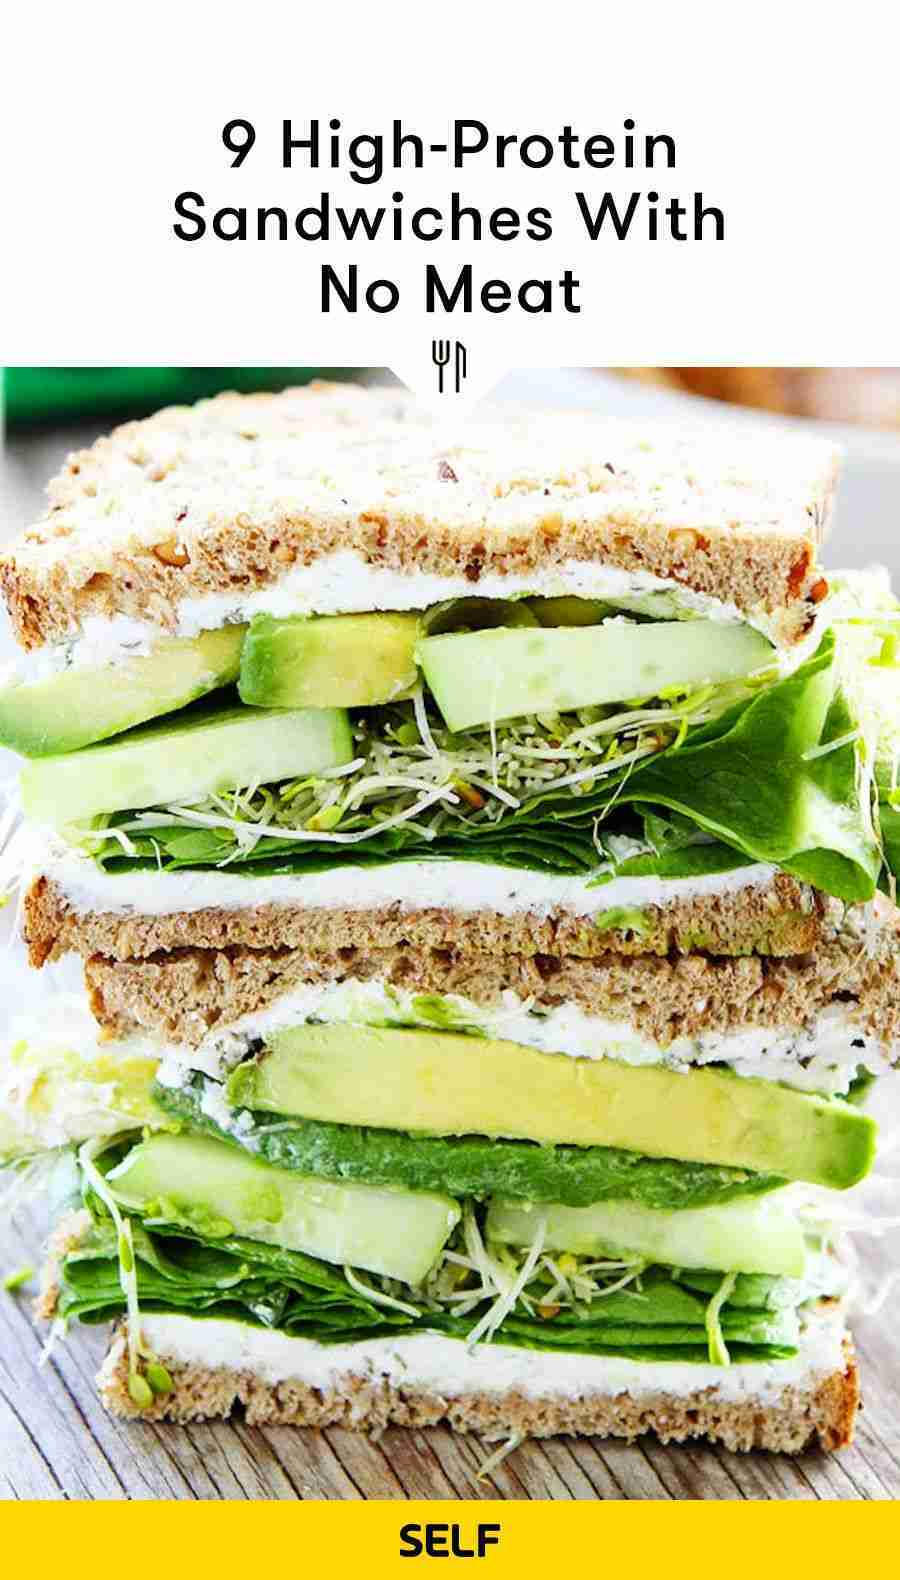 9 High-Protein Sandwiches With No Meat